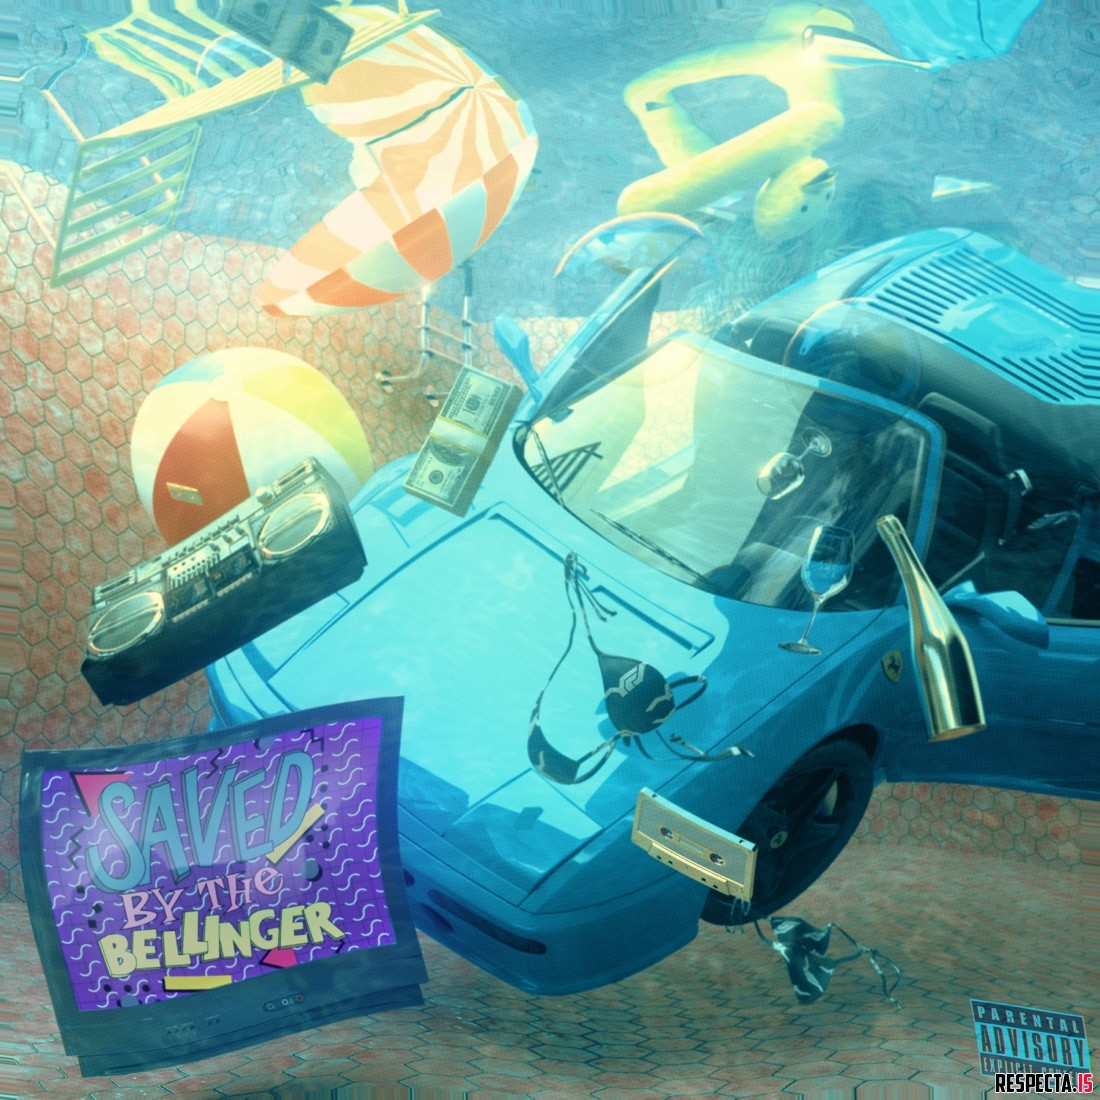 Eric Bellinger And Wale Collaborate On New Song, Treat